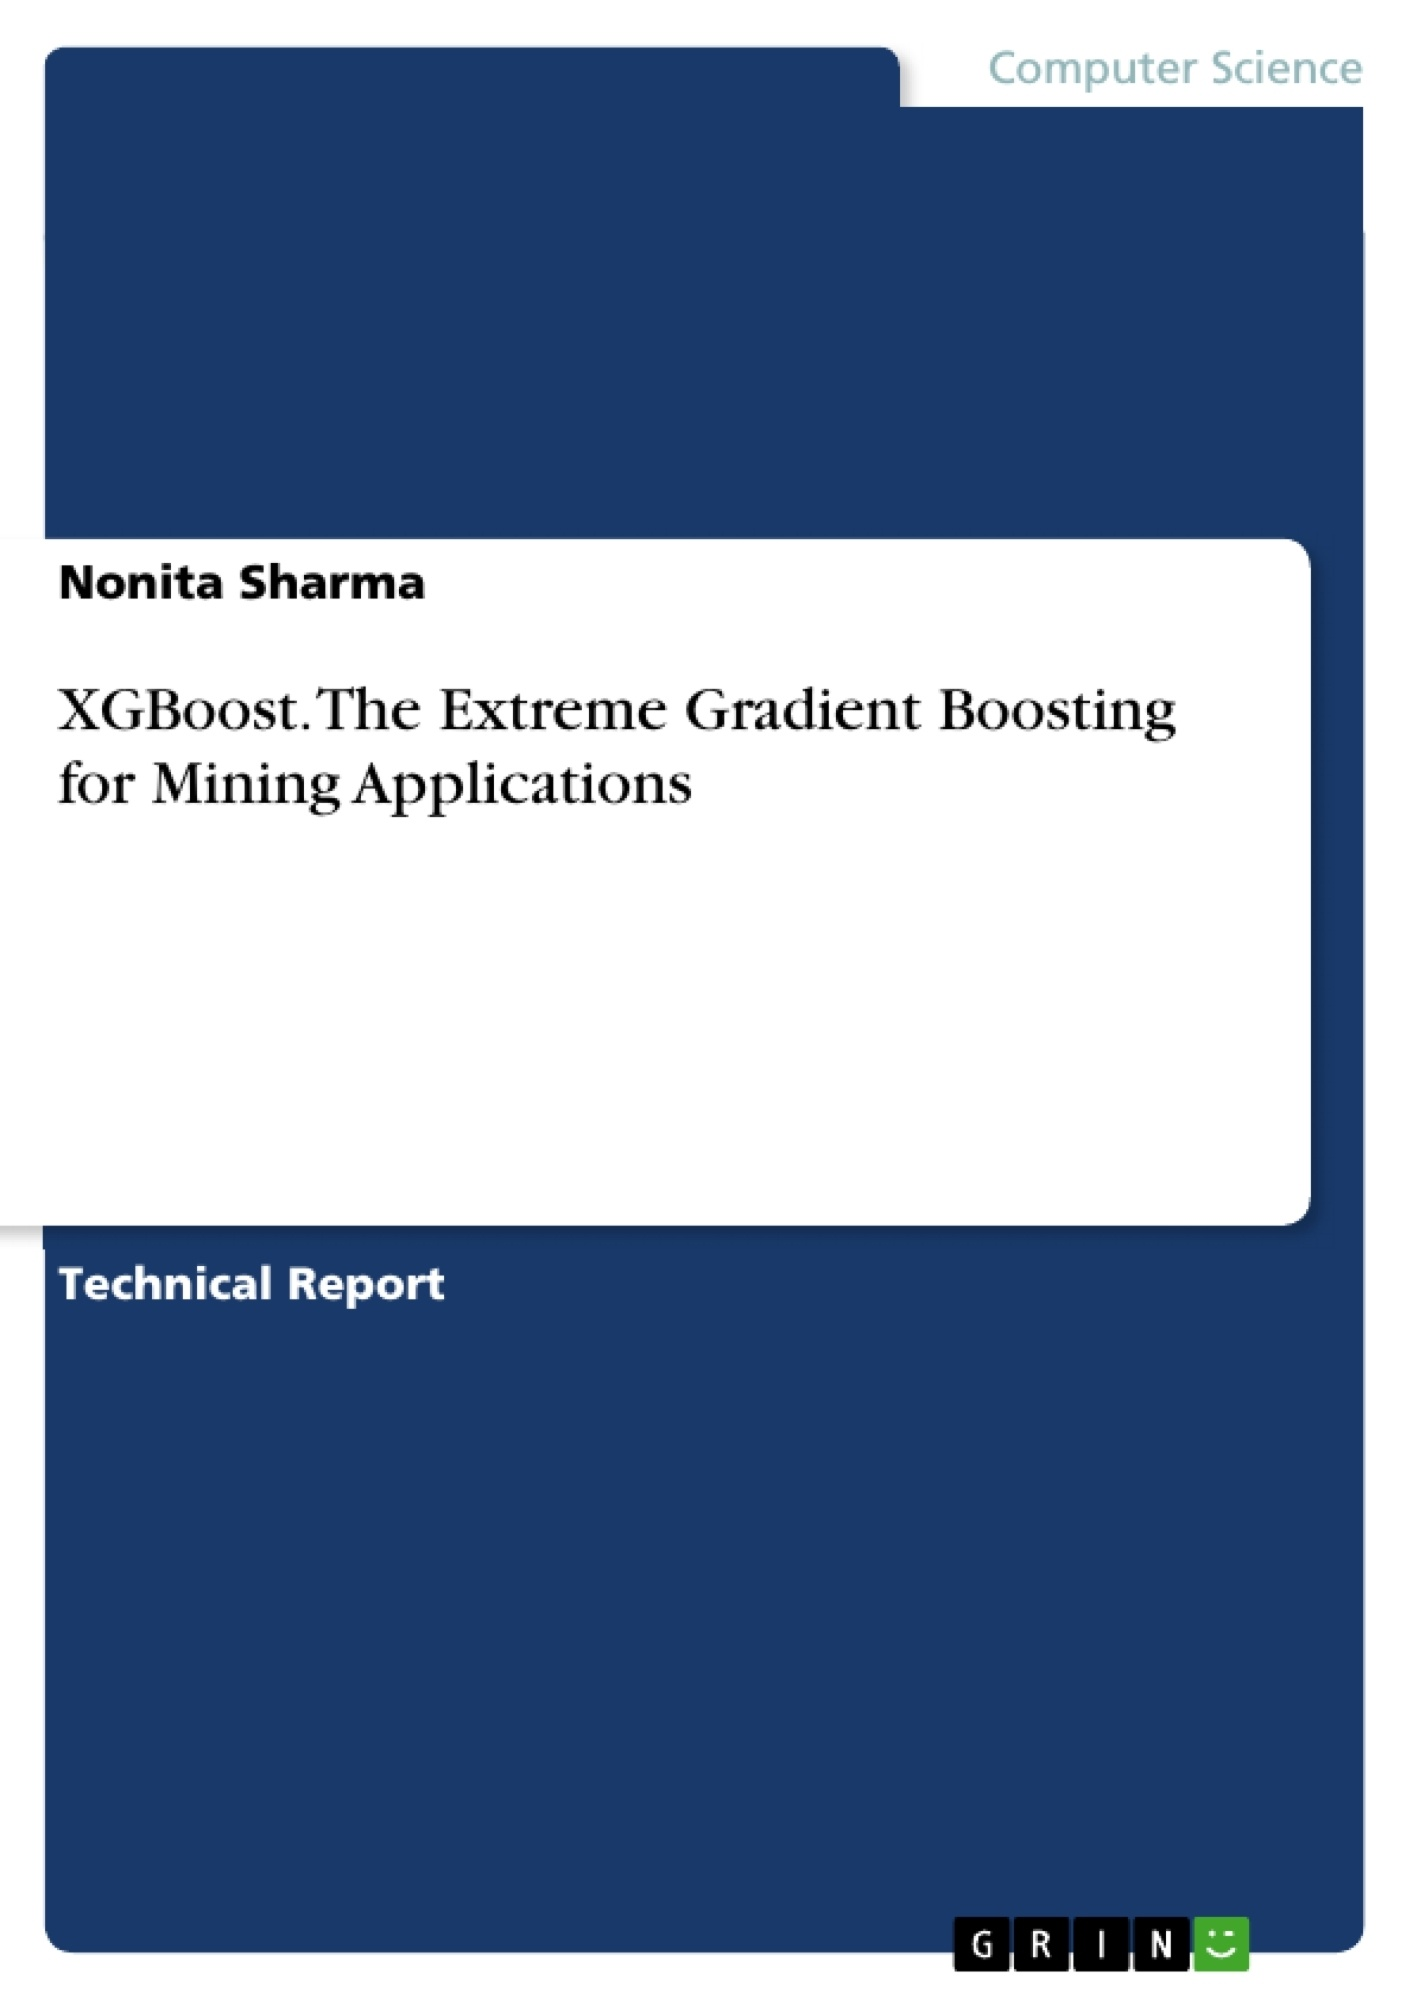 Title: XGBoost. The Extreme Gradient Boosting for Mining Applications